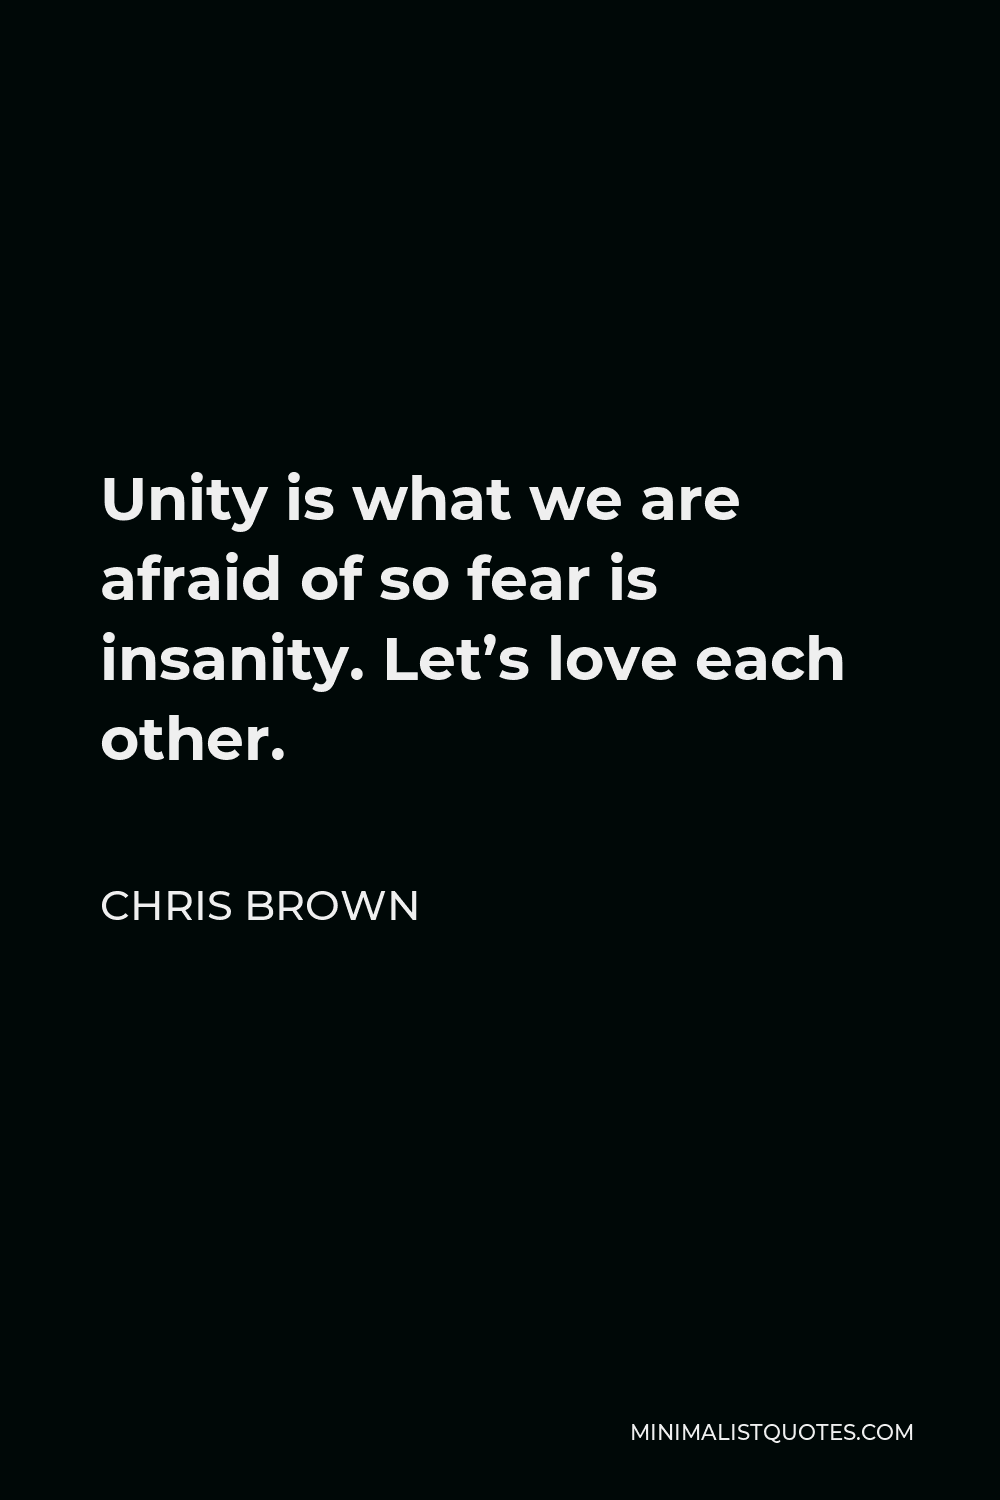 Chris Brown Quote - Unity is what we are afraid of so fear is insanity. Let's love each other.